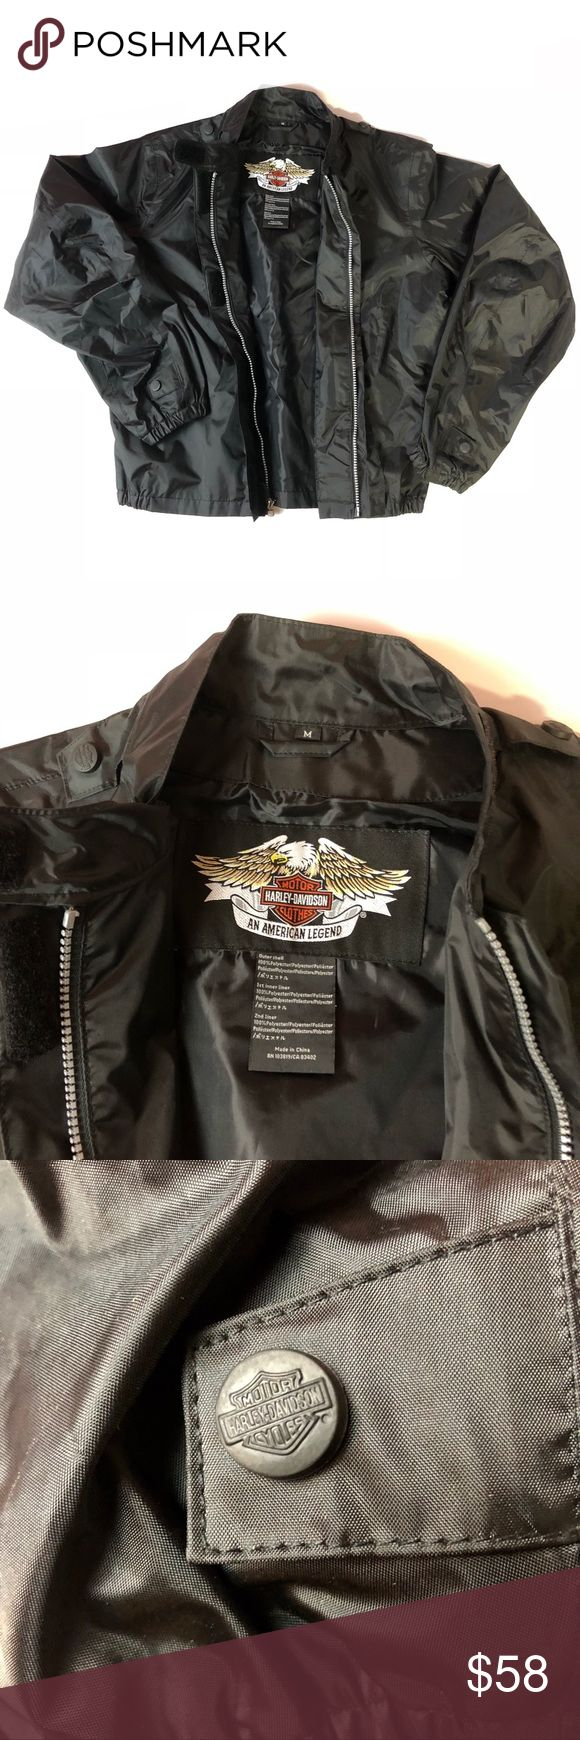 Harley-Davidson All Black Motorcycle Riding Jacket Pre-owned in Excellent Condition!  Size Adult Medium   Orders ship next business day with cleared payment thanks for your interest Harley-Davidson Jackets & Coats Performance Jackets